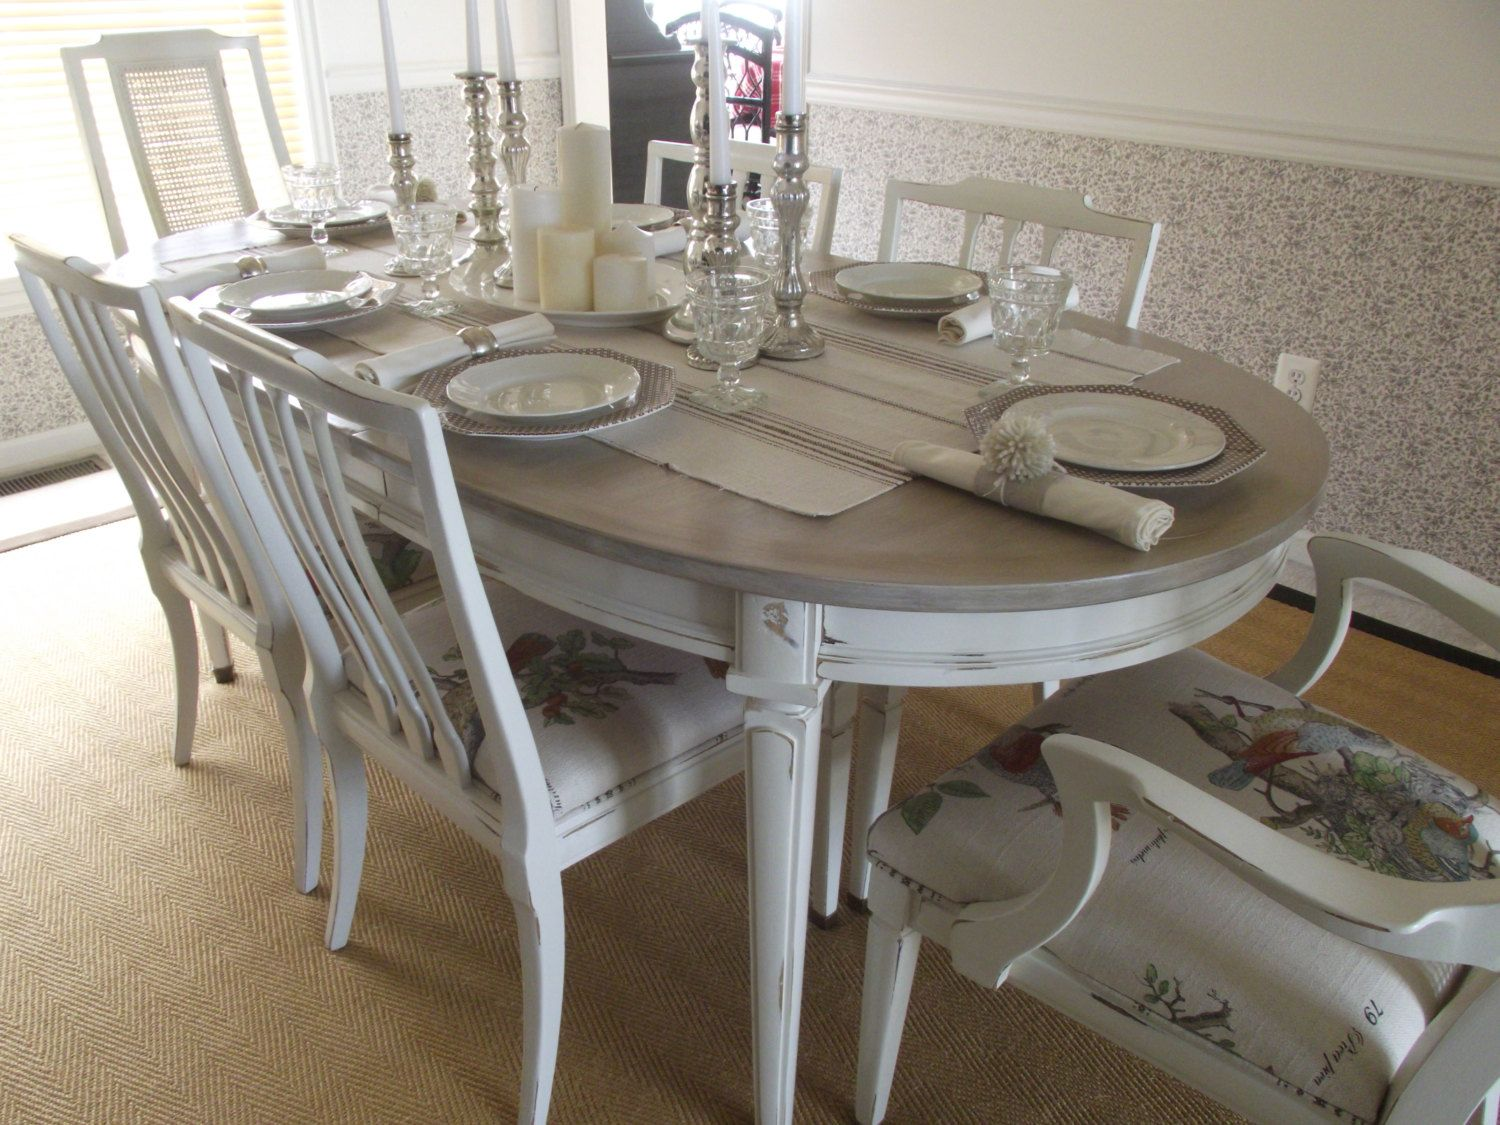 Vintage French Country Dining Table And Chairs By MeAndPhoebe 120000